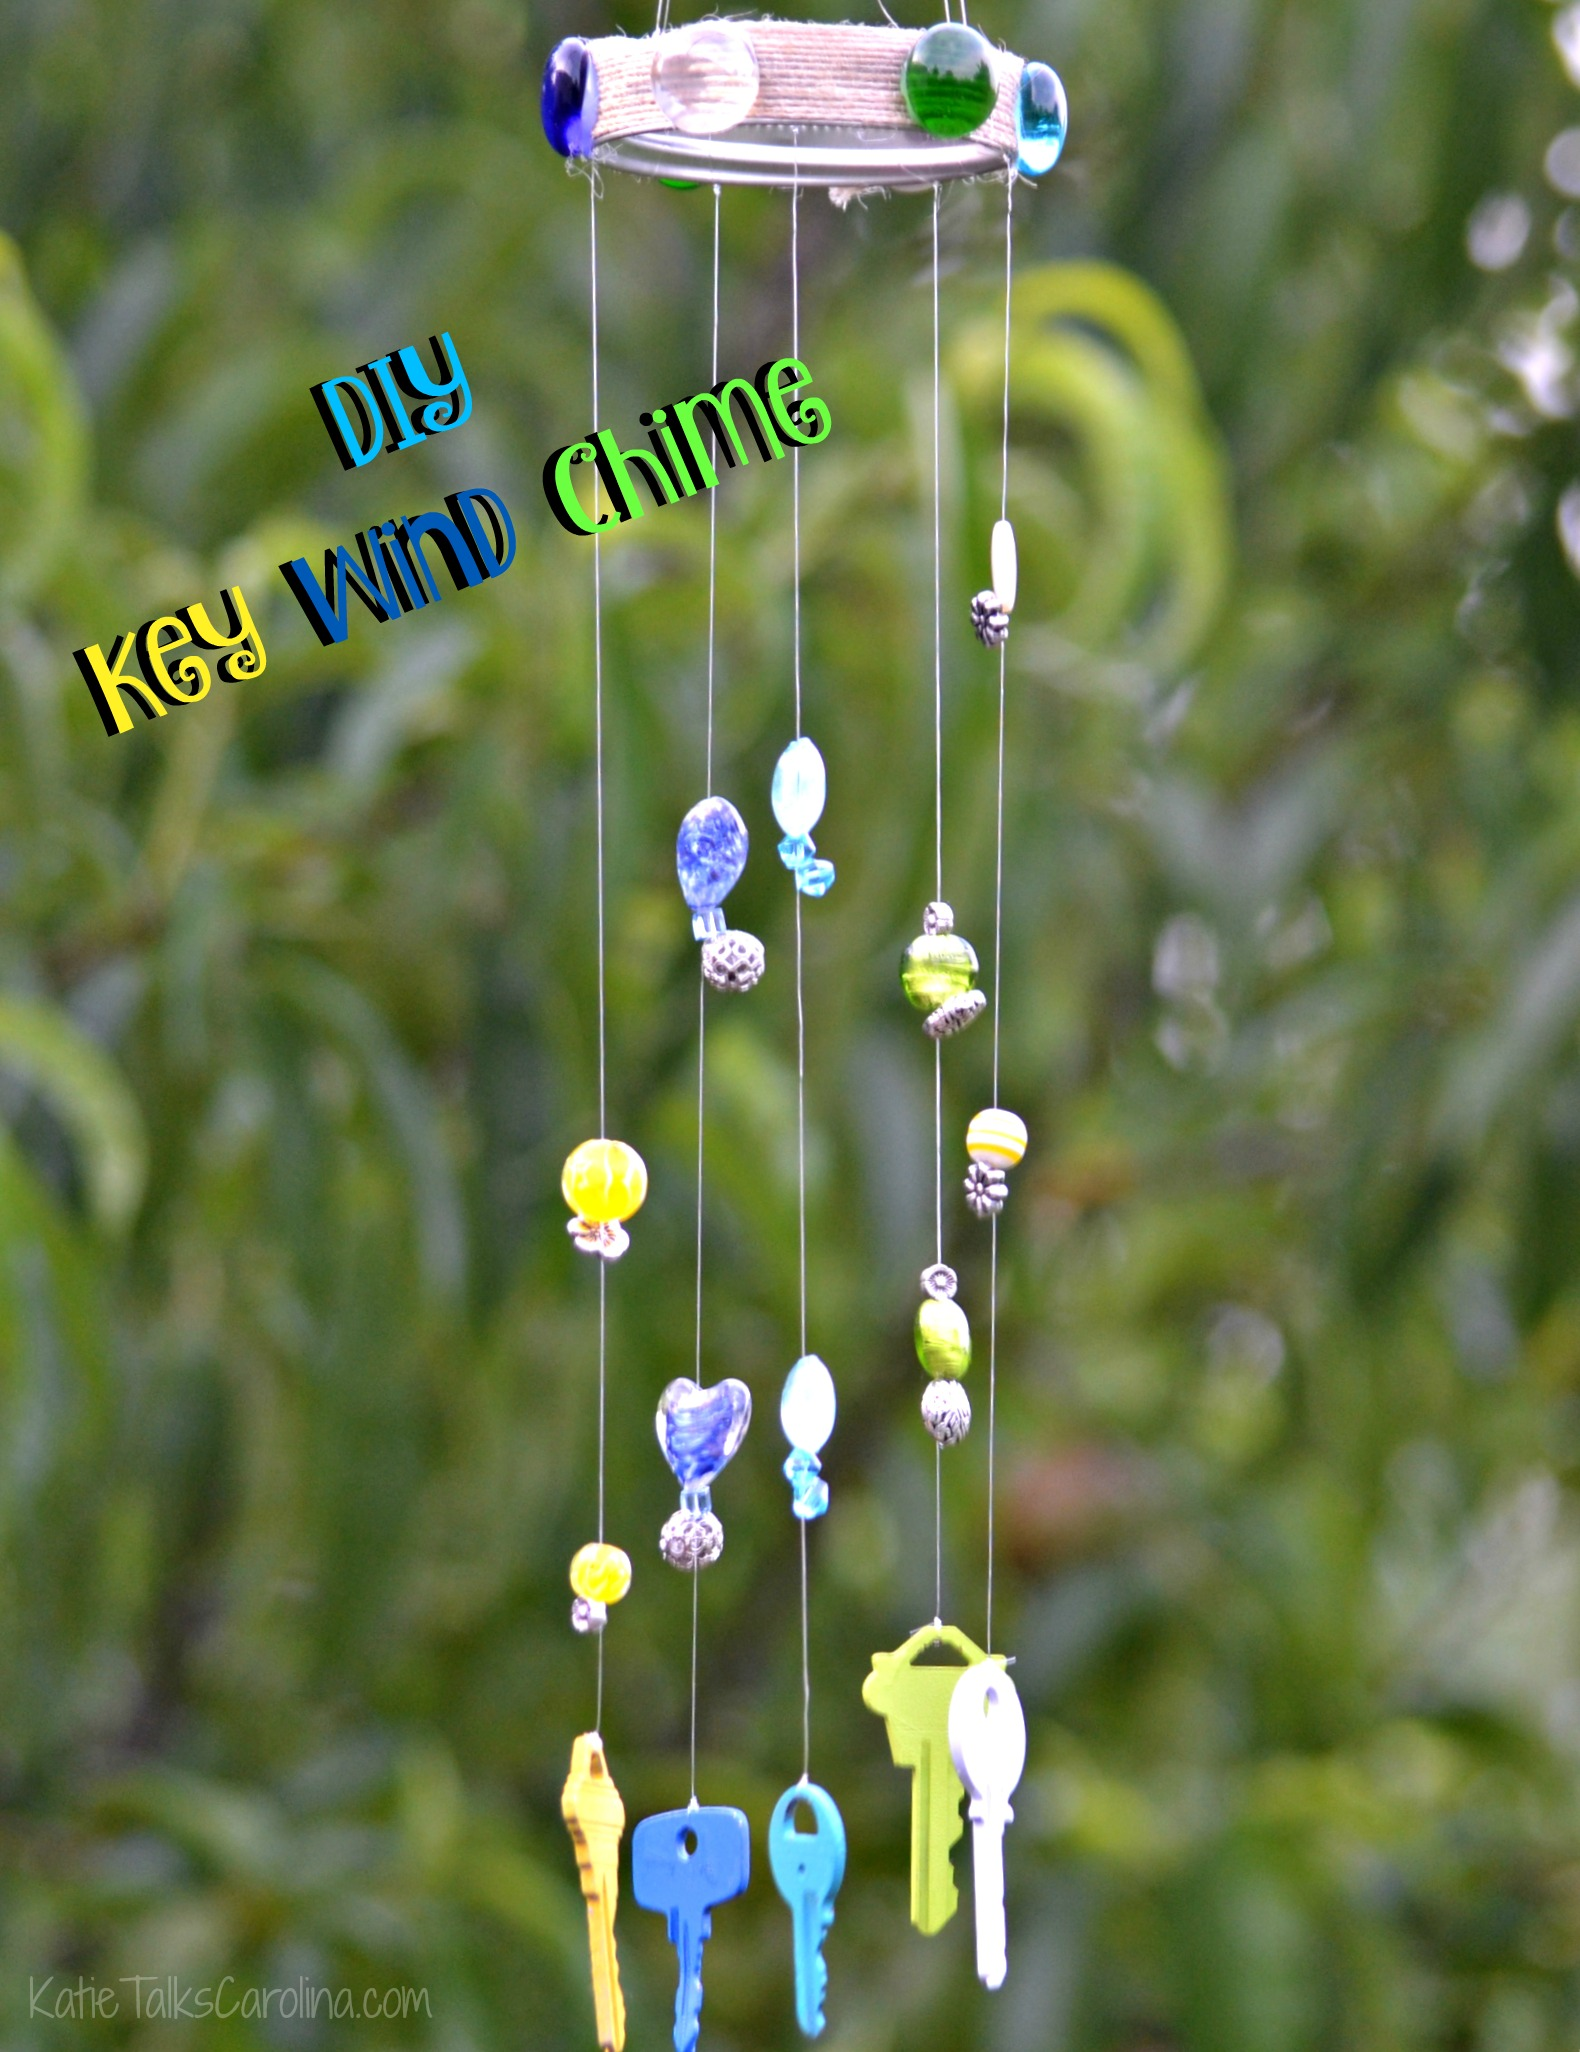 Diy key wind chime katie talks carolina for Homemade chimes